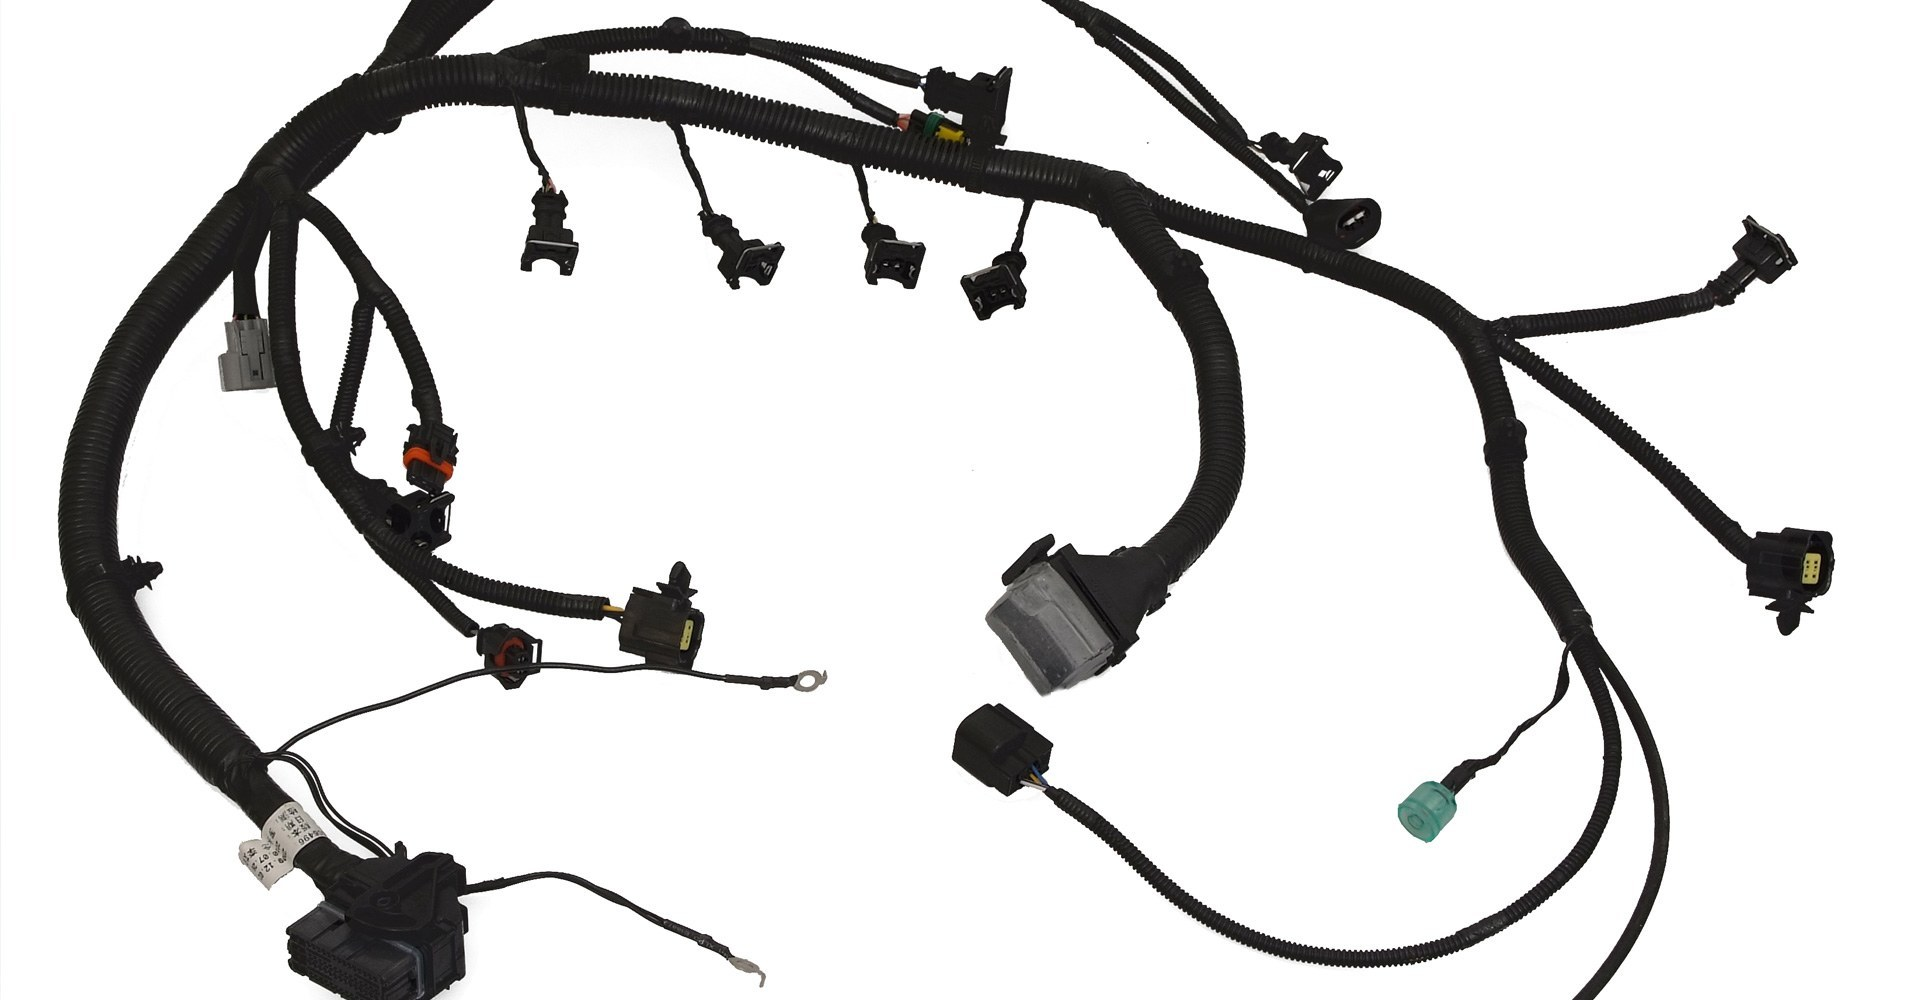 wireharness automotive wire harness products lorom car wiring harness at eliteediting.co